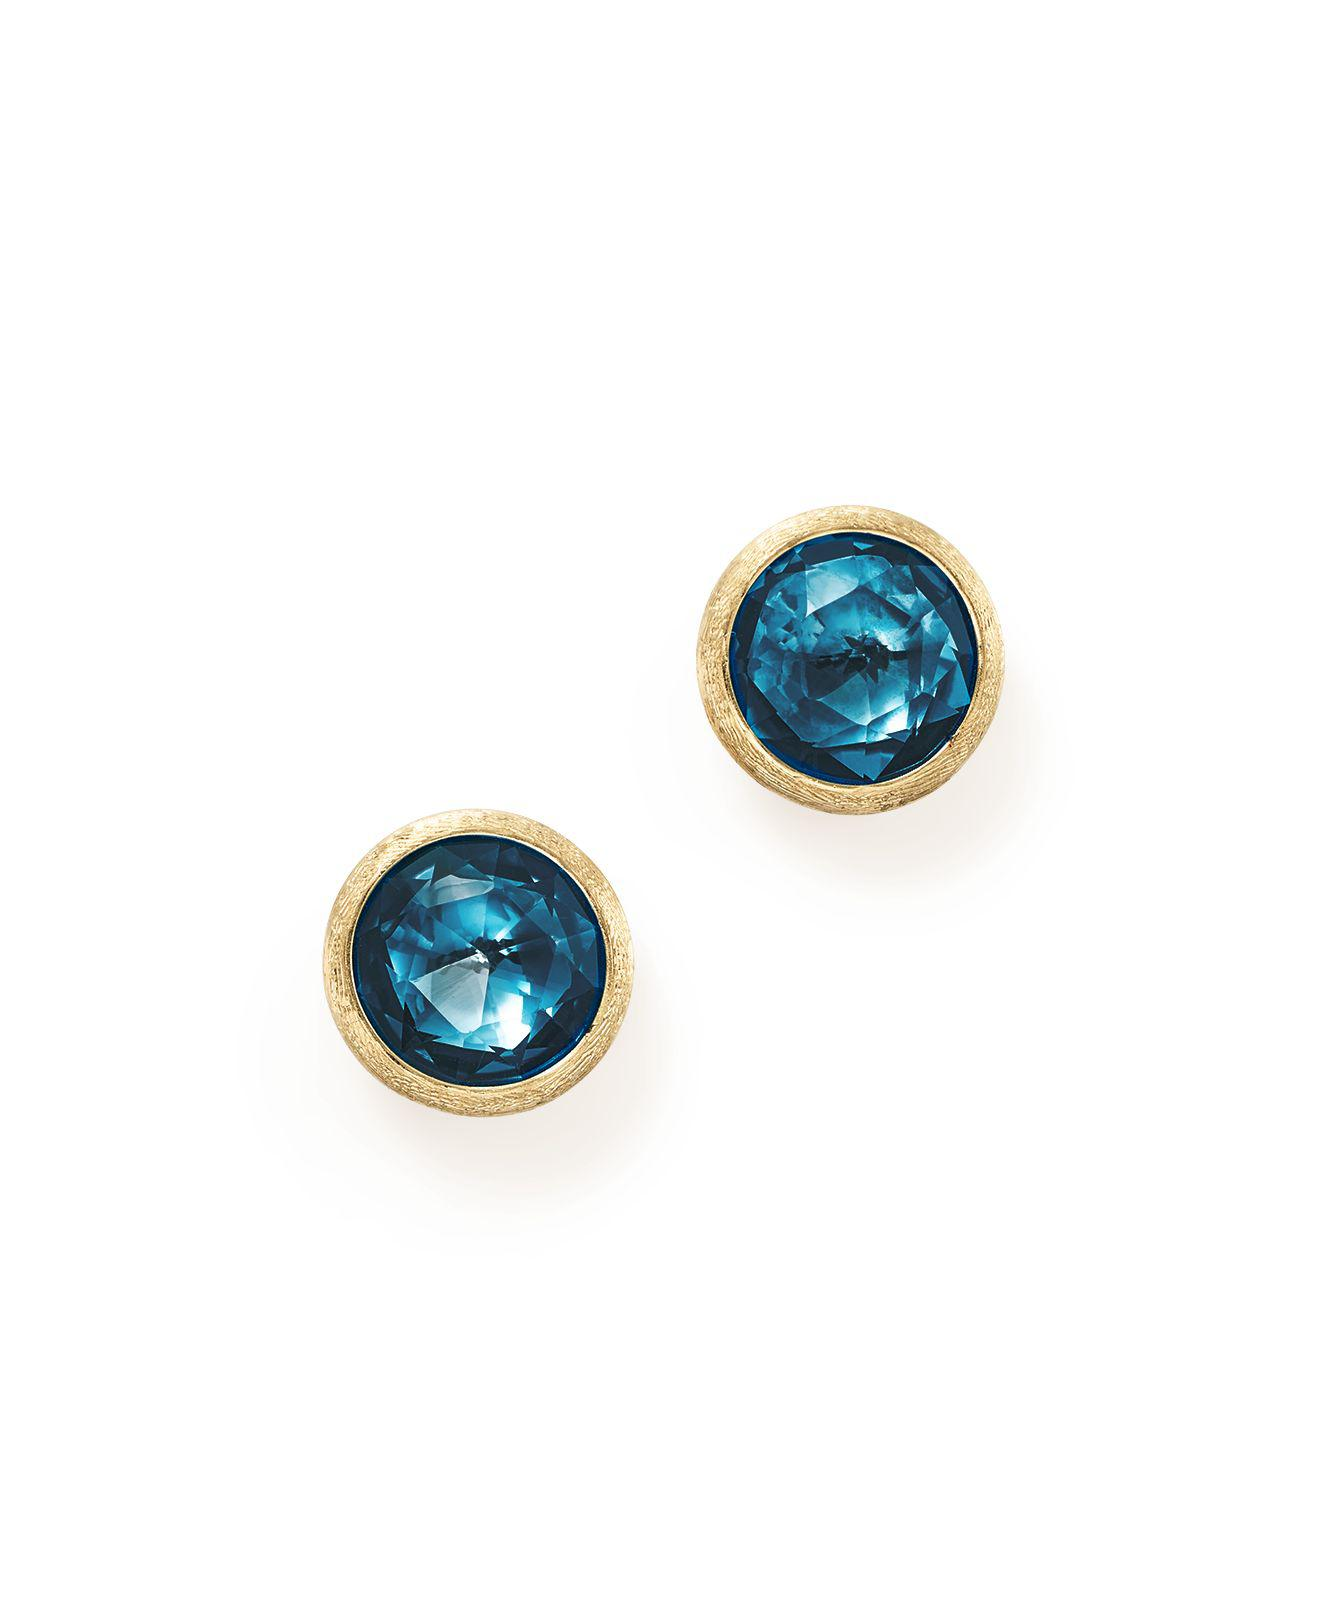 delightful image products virtue product blue brilliant earrings topaz stud